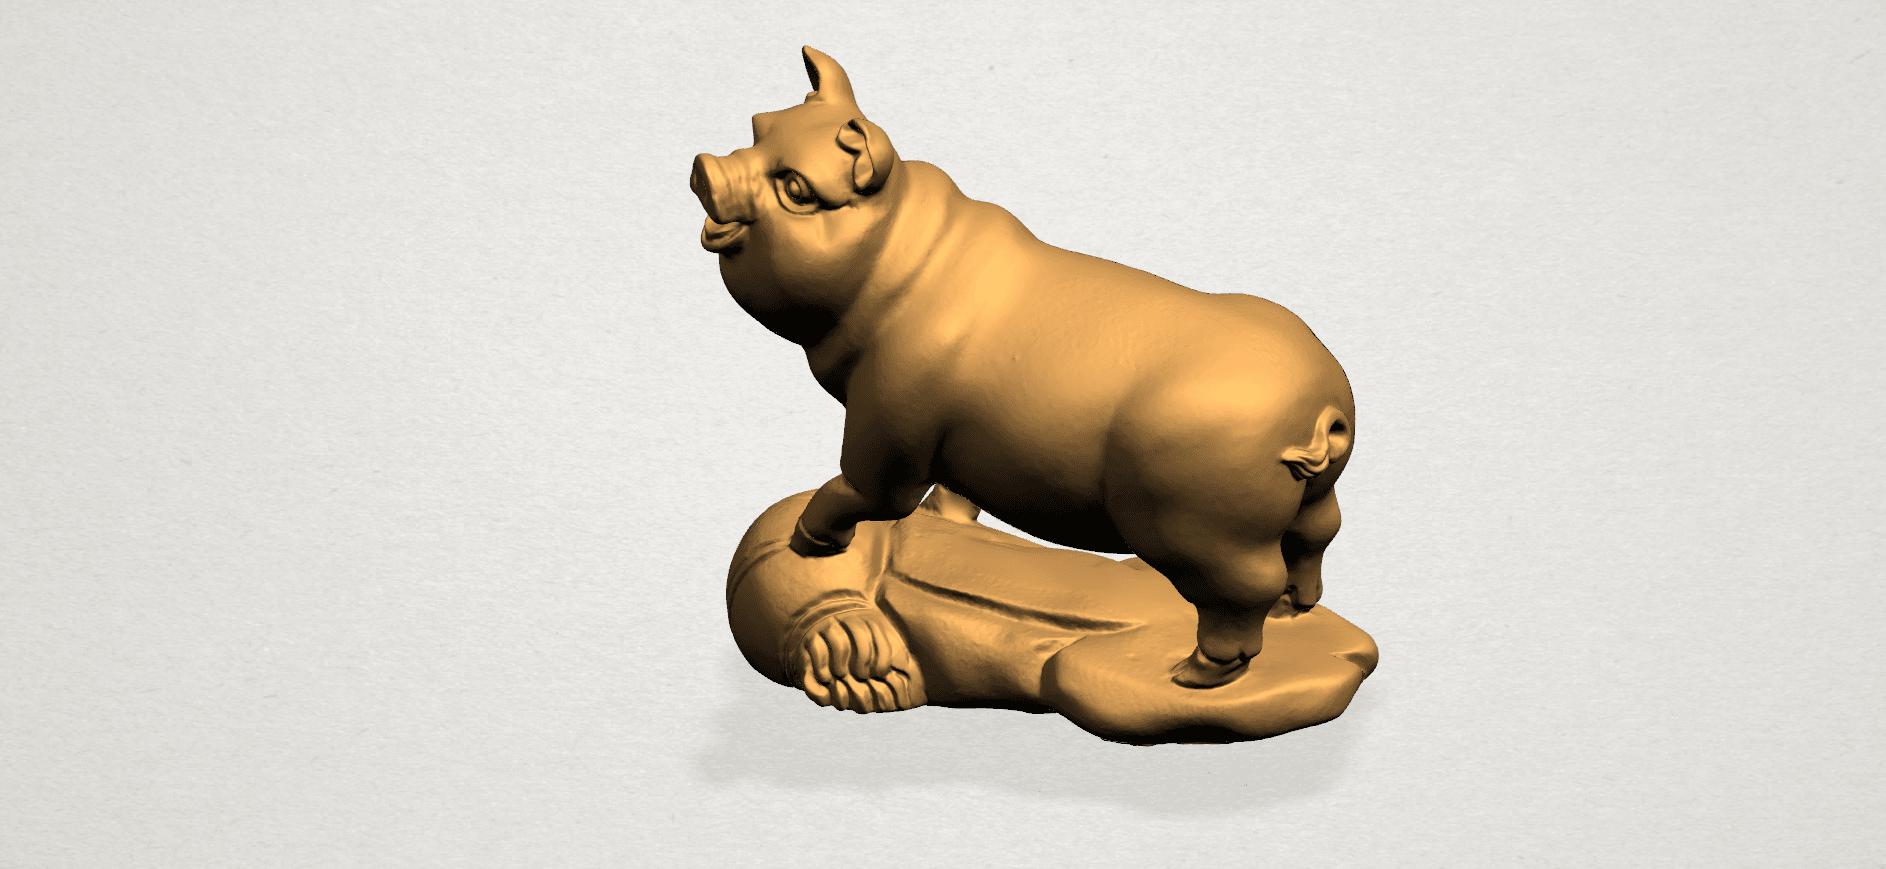 Chinese Horoscope12-A02.png Download free STL file Chinese Horoscope 12 pig • Model to 3D print, GeorgesNikkei